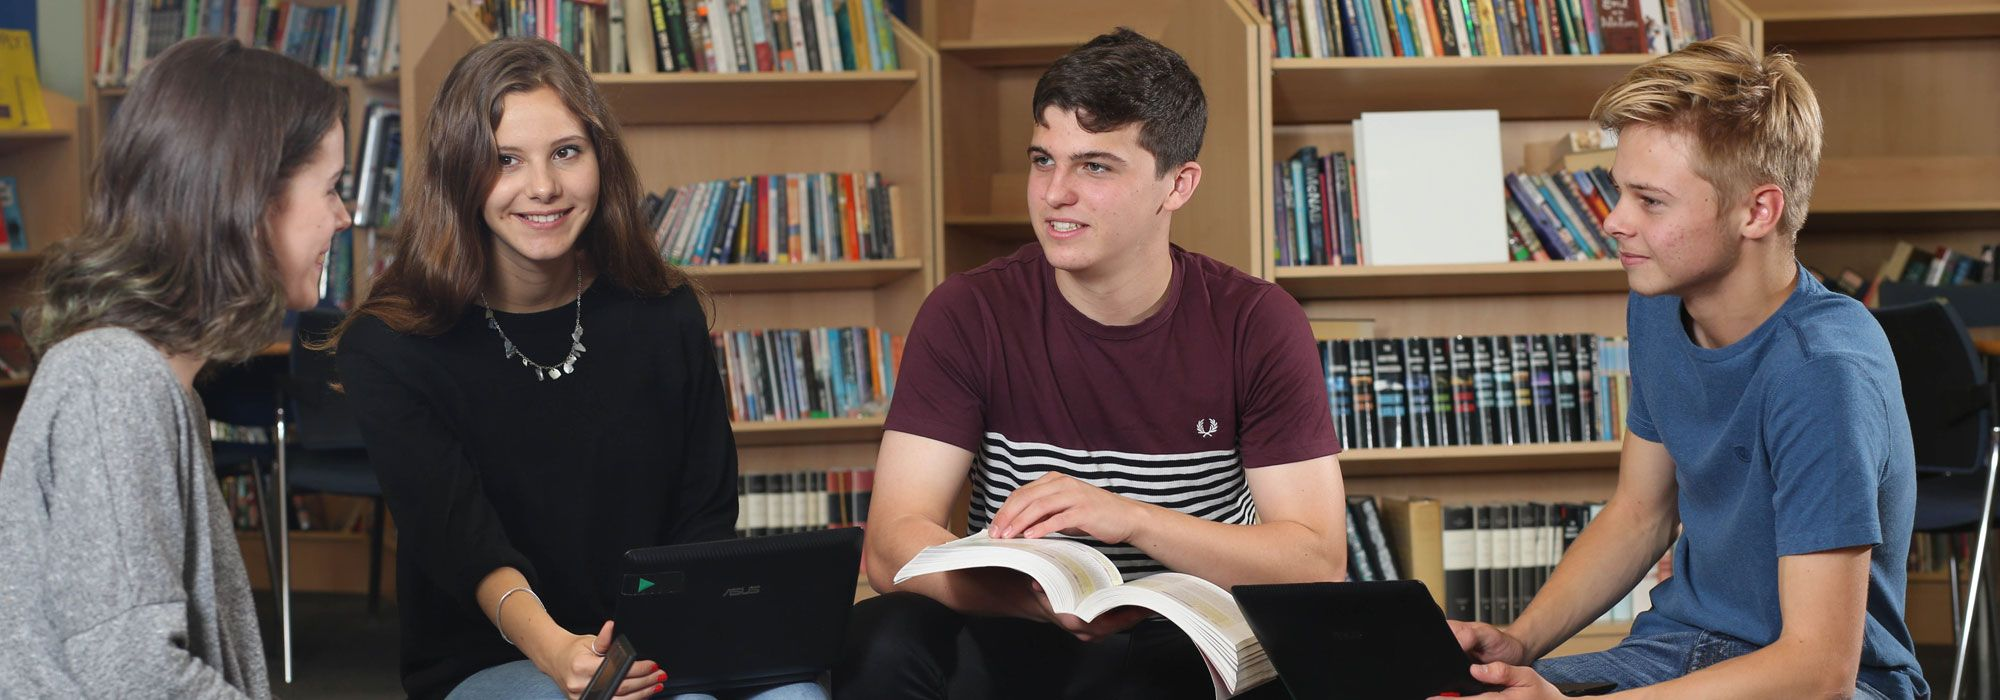 Sixth Form students in Learning Resource Centre